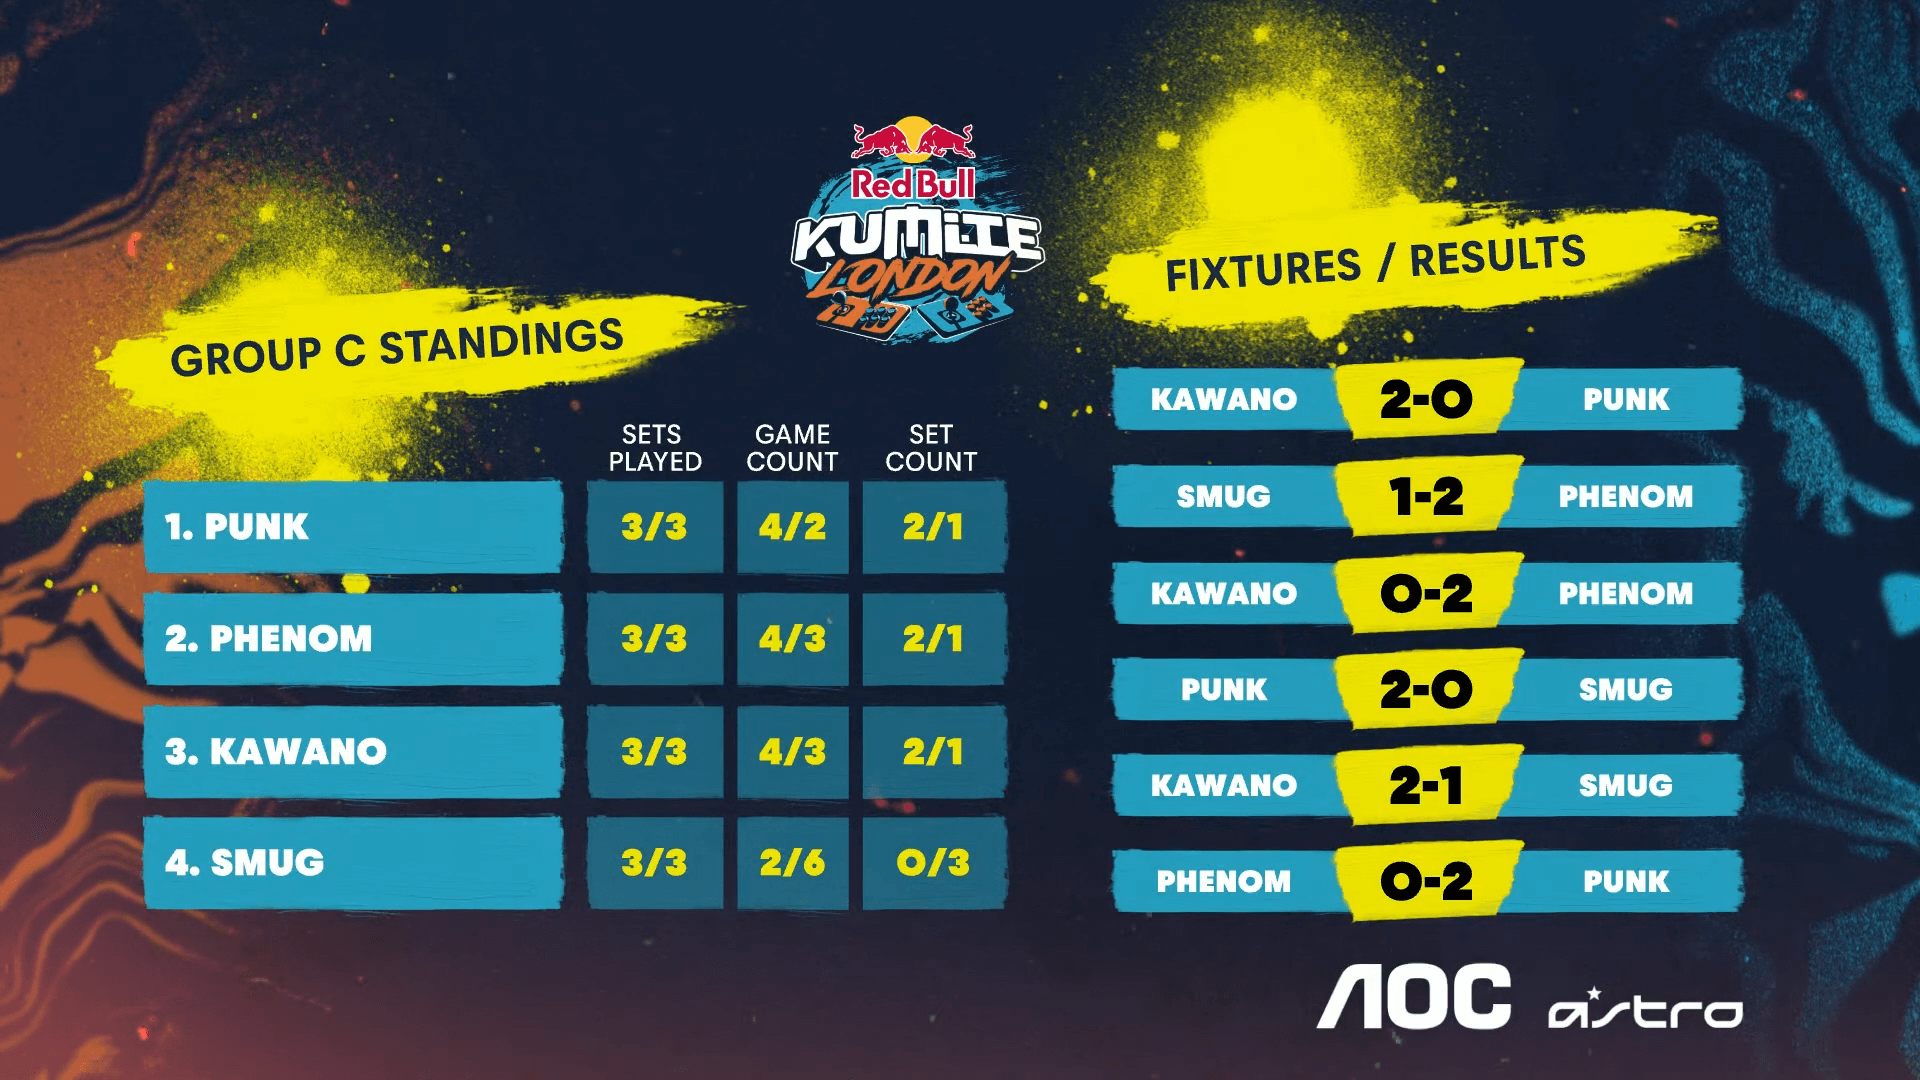 Street Fighter V esports — Red Bull Kumite London — Group C results